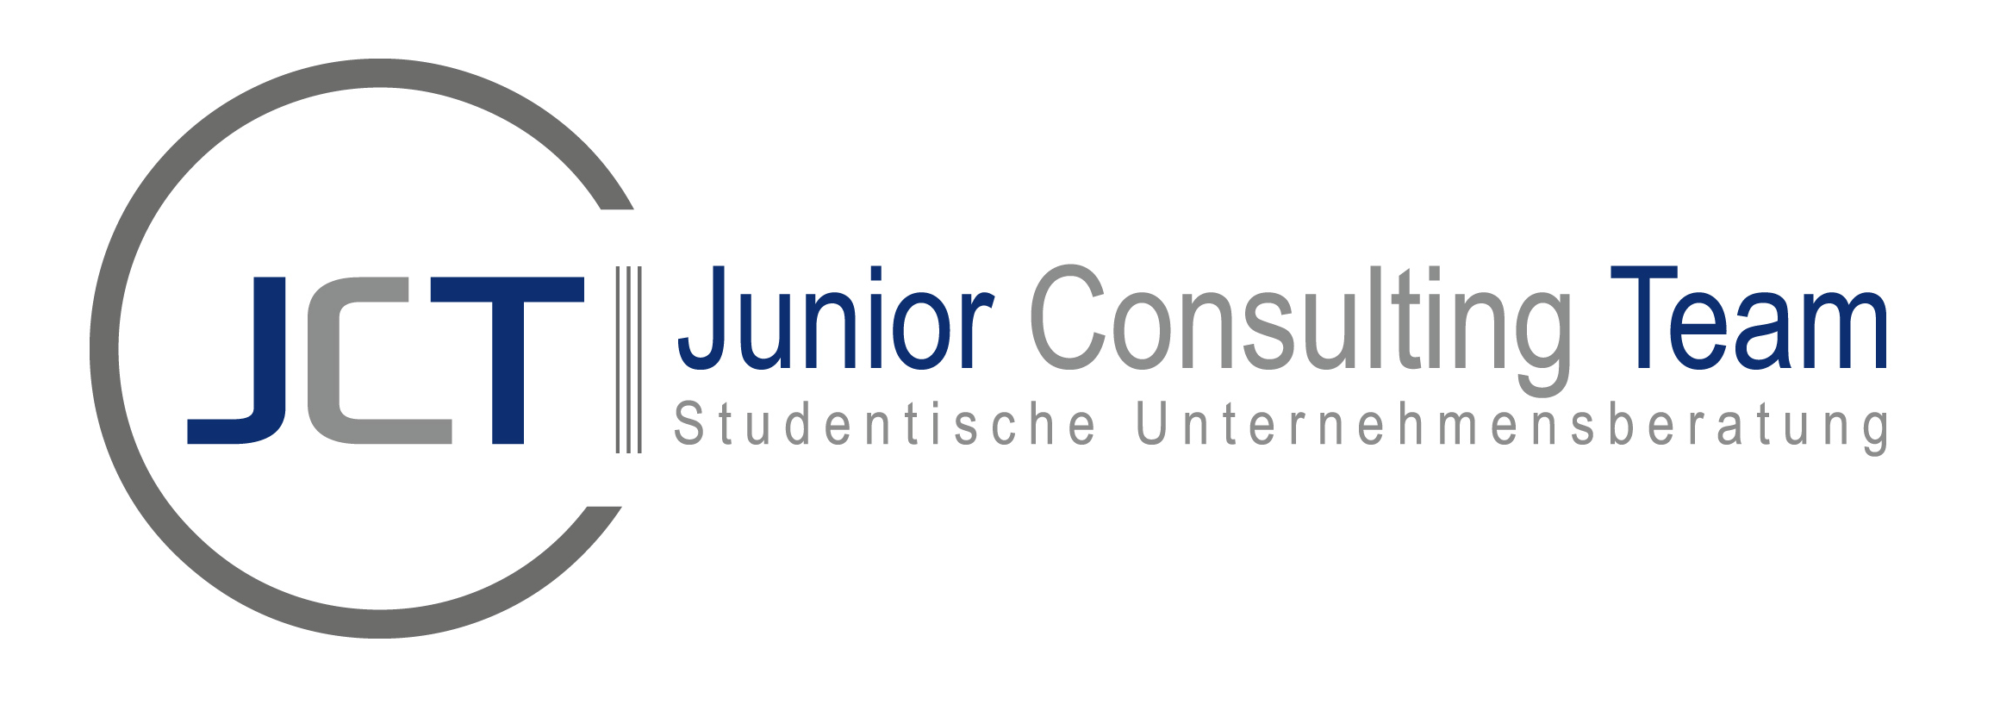 "Towards entry ""Prof. Laumer becomes curator of the Junior Consulting Team e.V.!"""